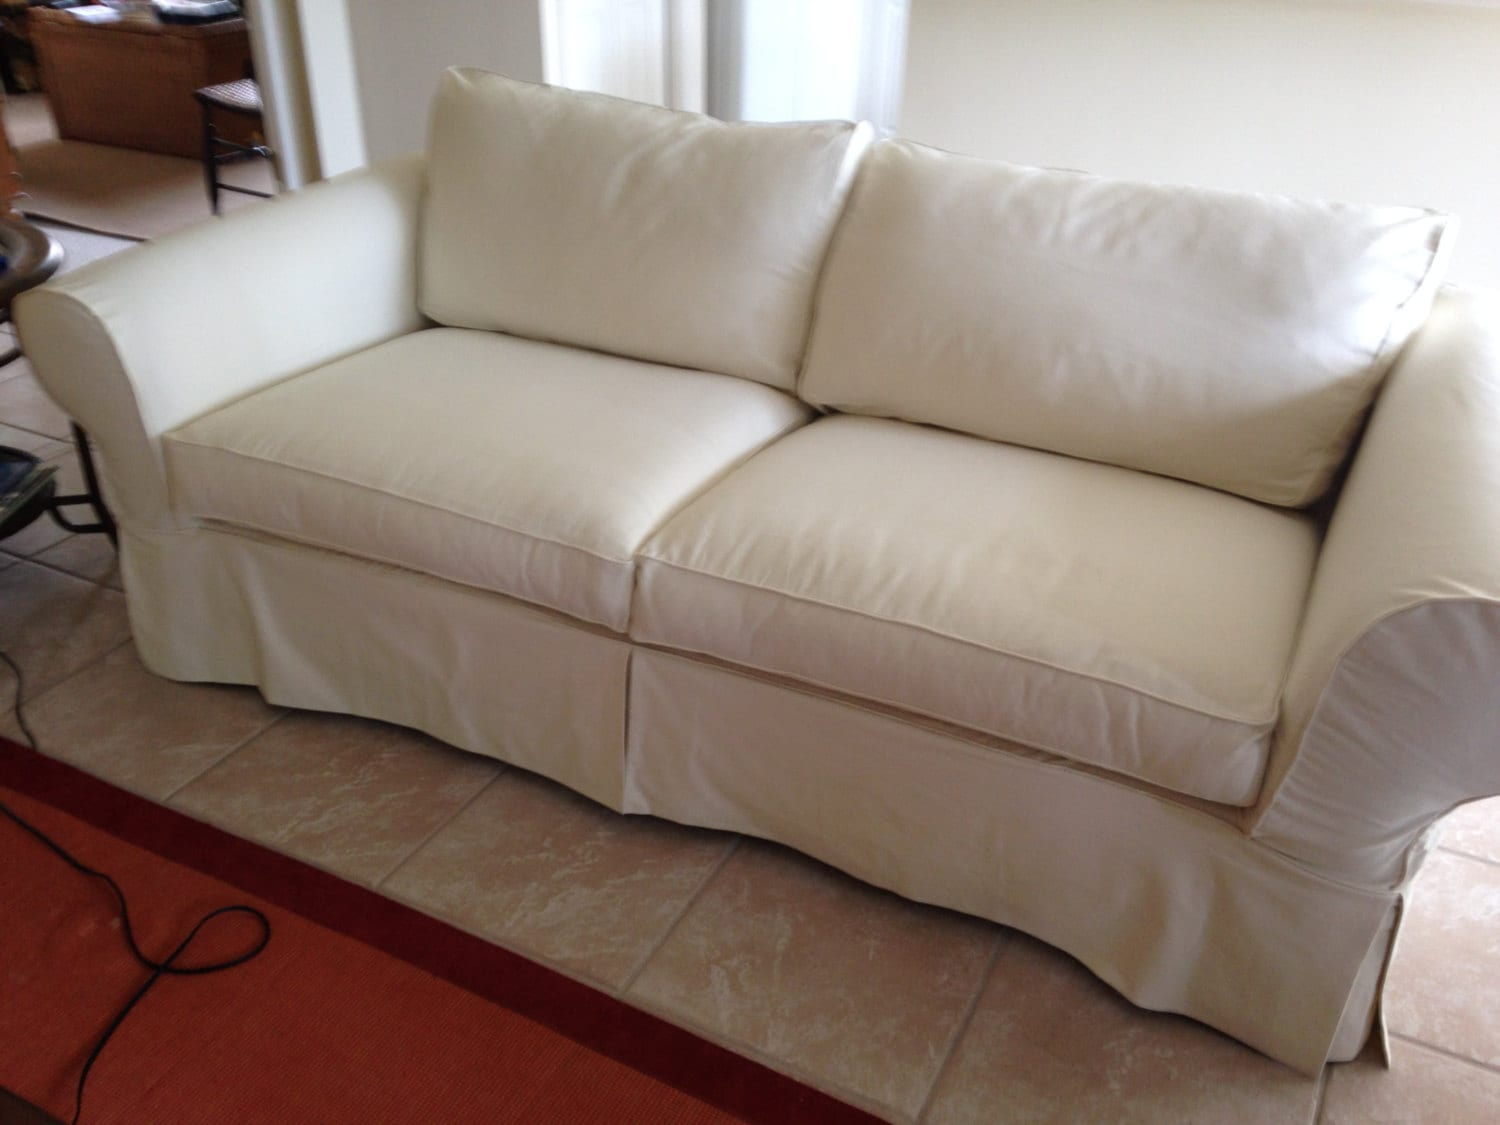 4 cushion love seat under 61 inches custom slipcover